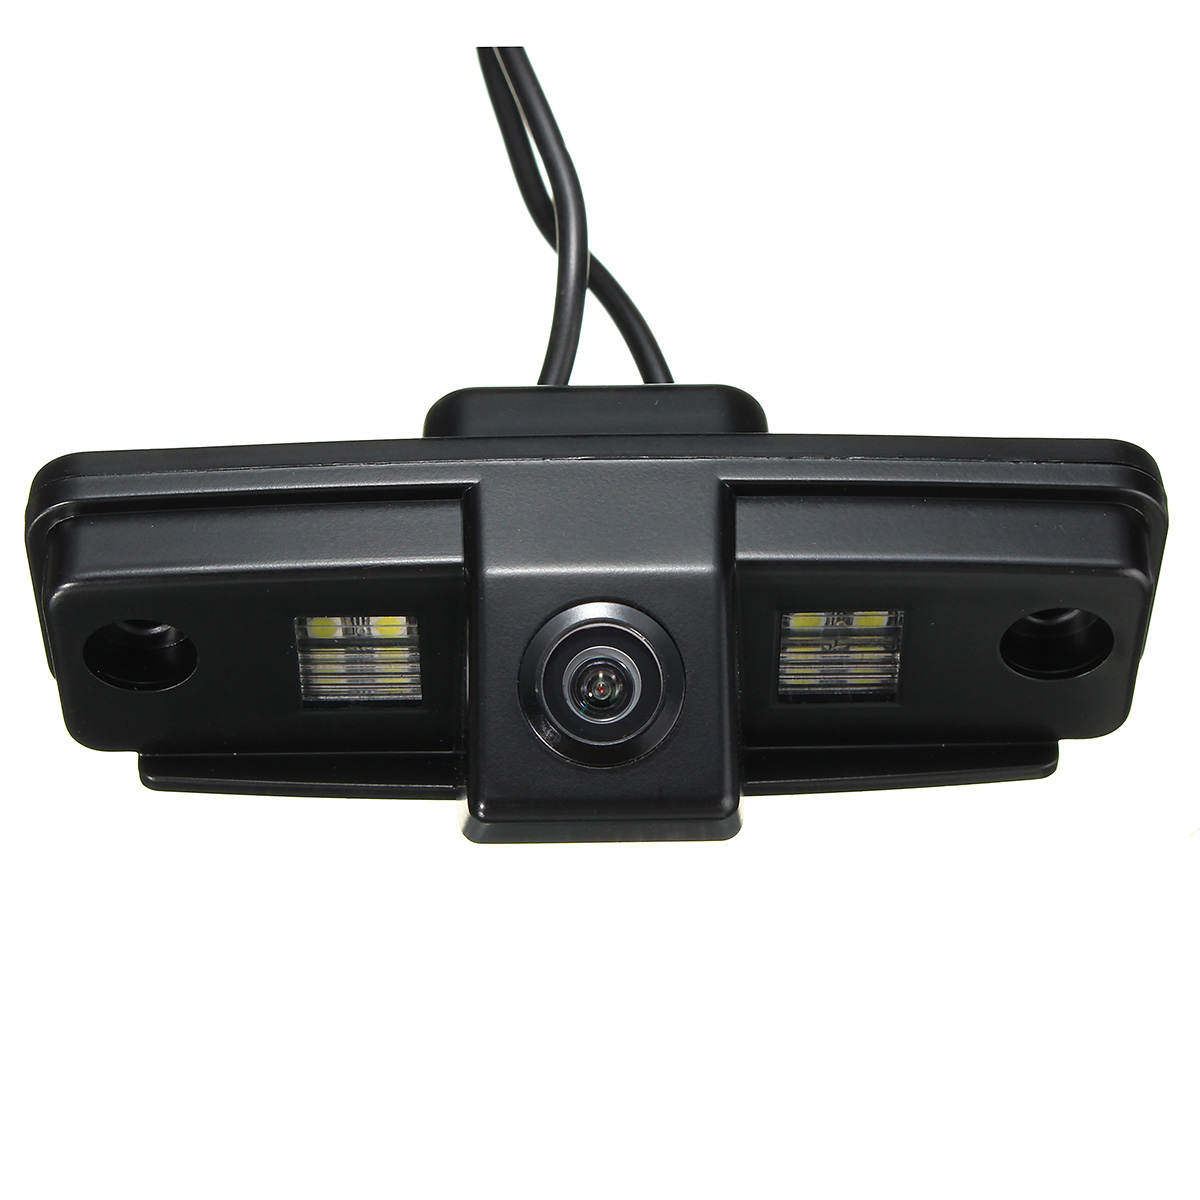 Full HD Night Vision Car Rear View camera for Subaru Forester and Outback with Wide Angled Camera